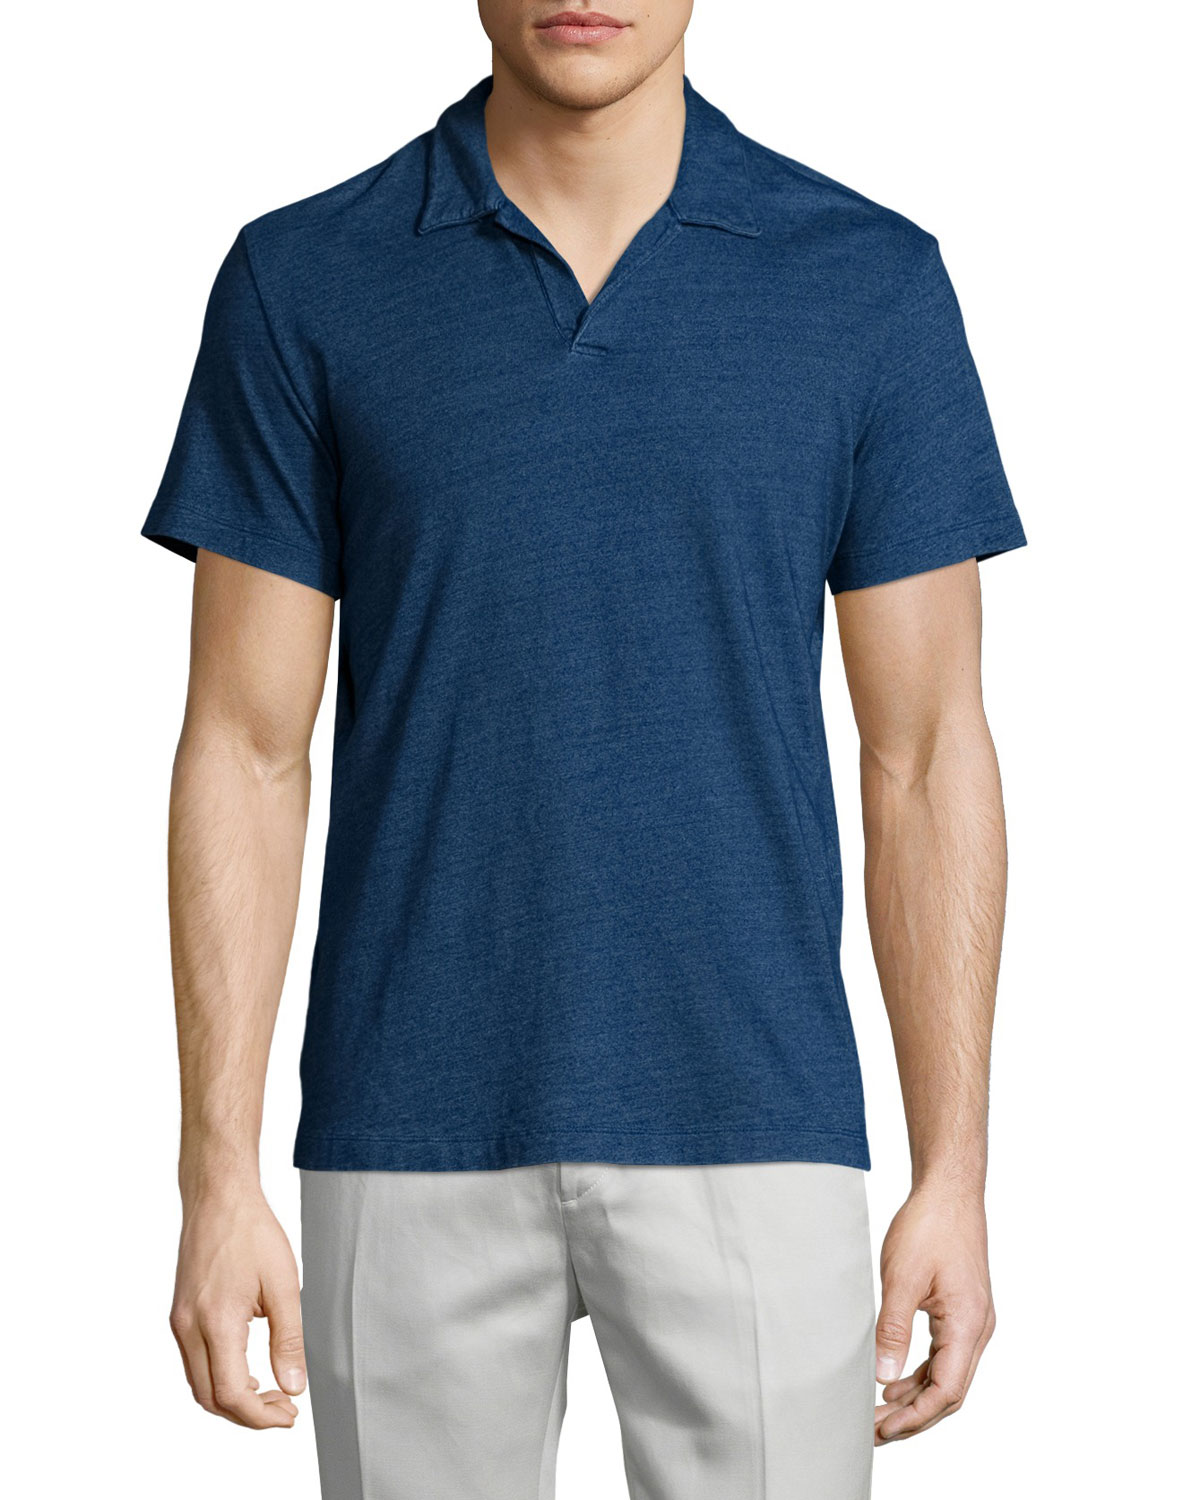 Willem Johnny-Collar Short-Sleeve Polo Shirt, Indigo